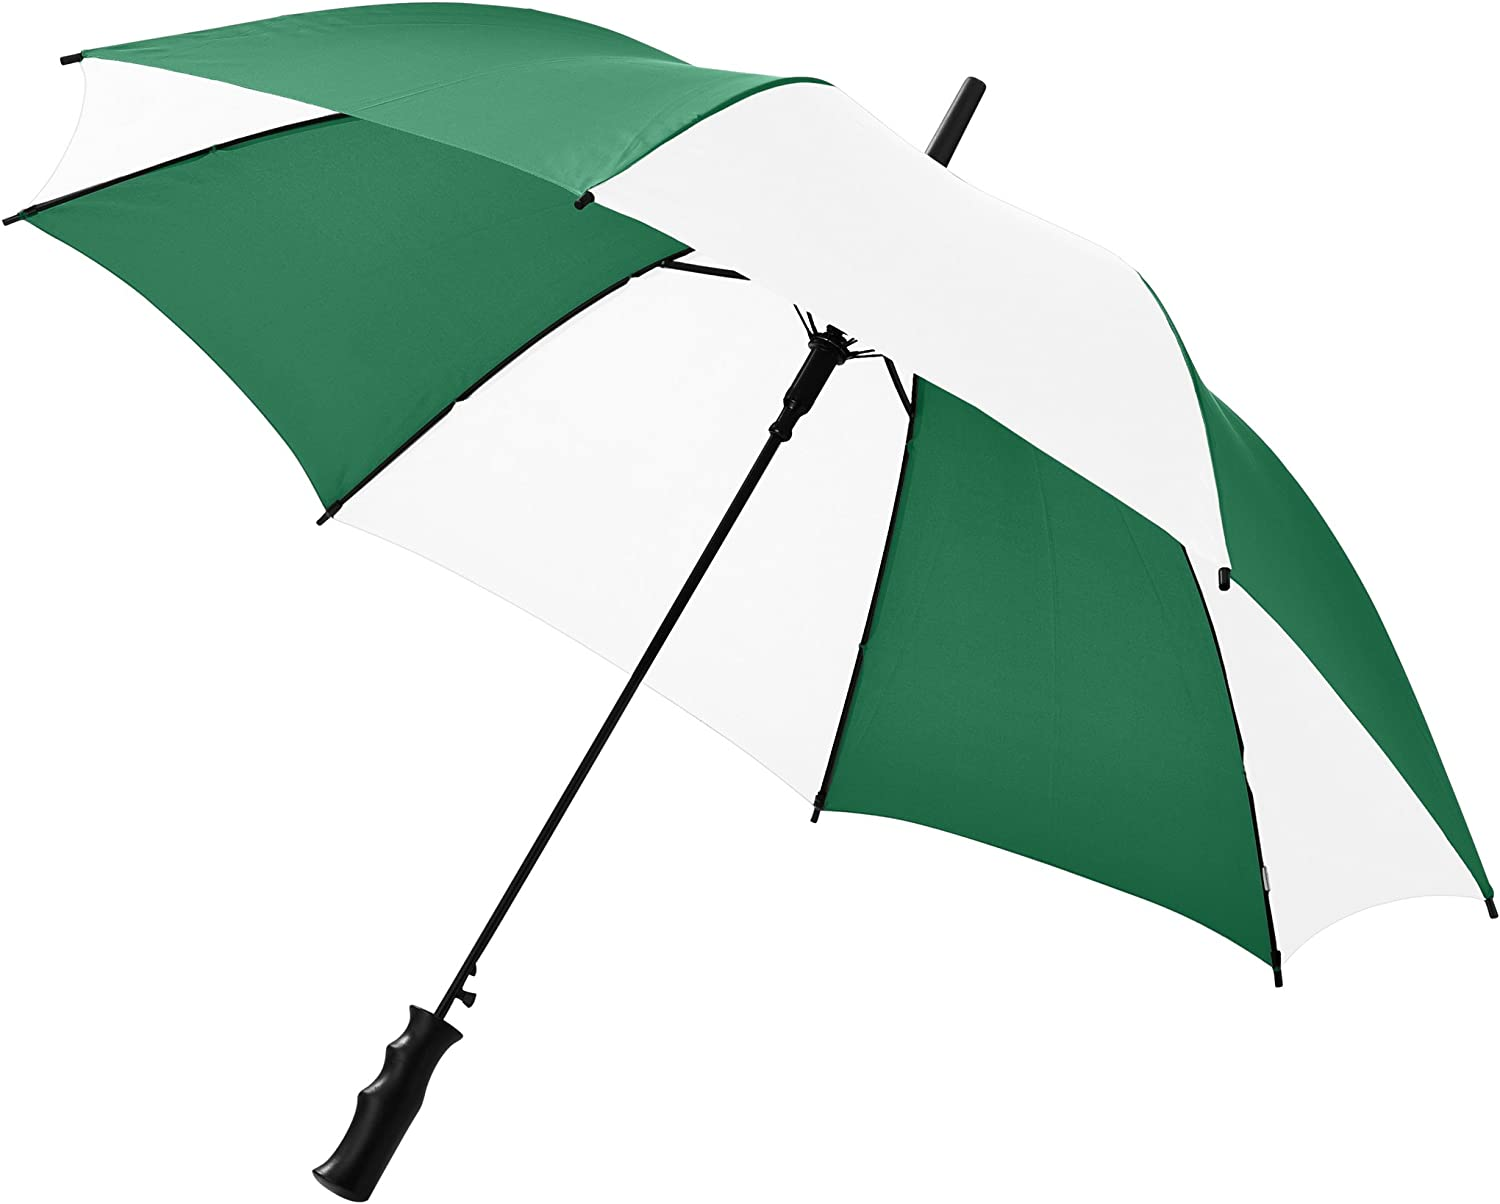 Green,White Bullet 23 Inch Barry Automatic Umbrella 31.5 x 41.3 inches